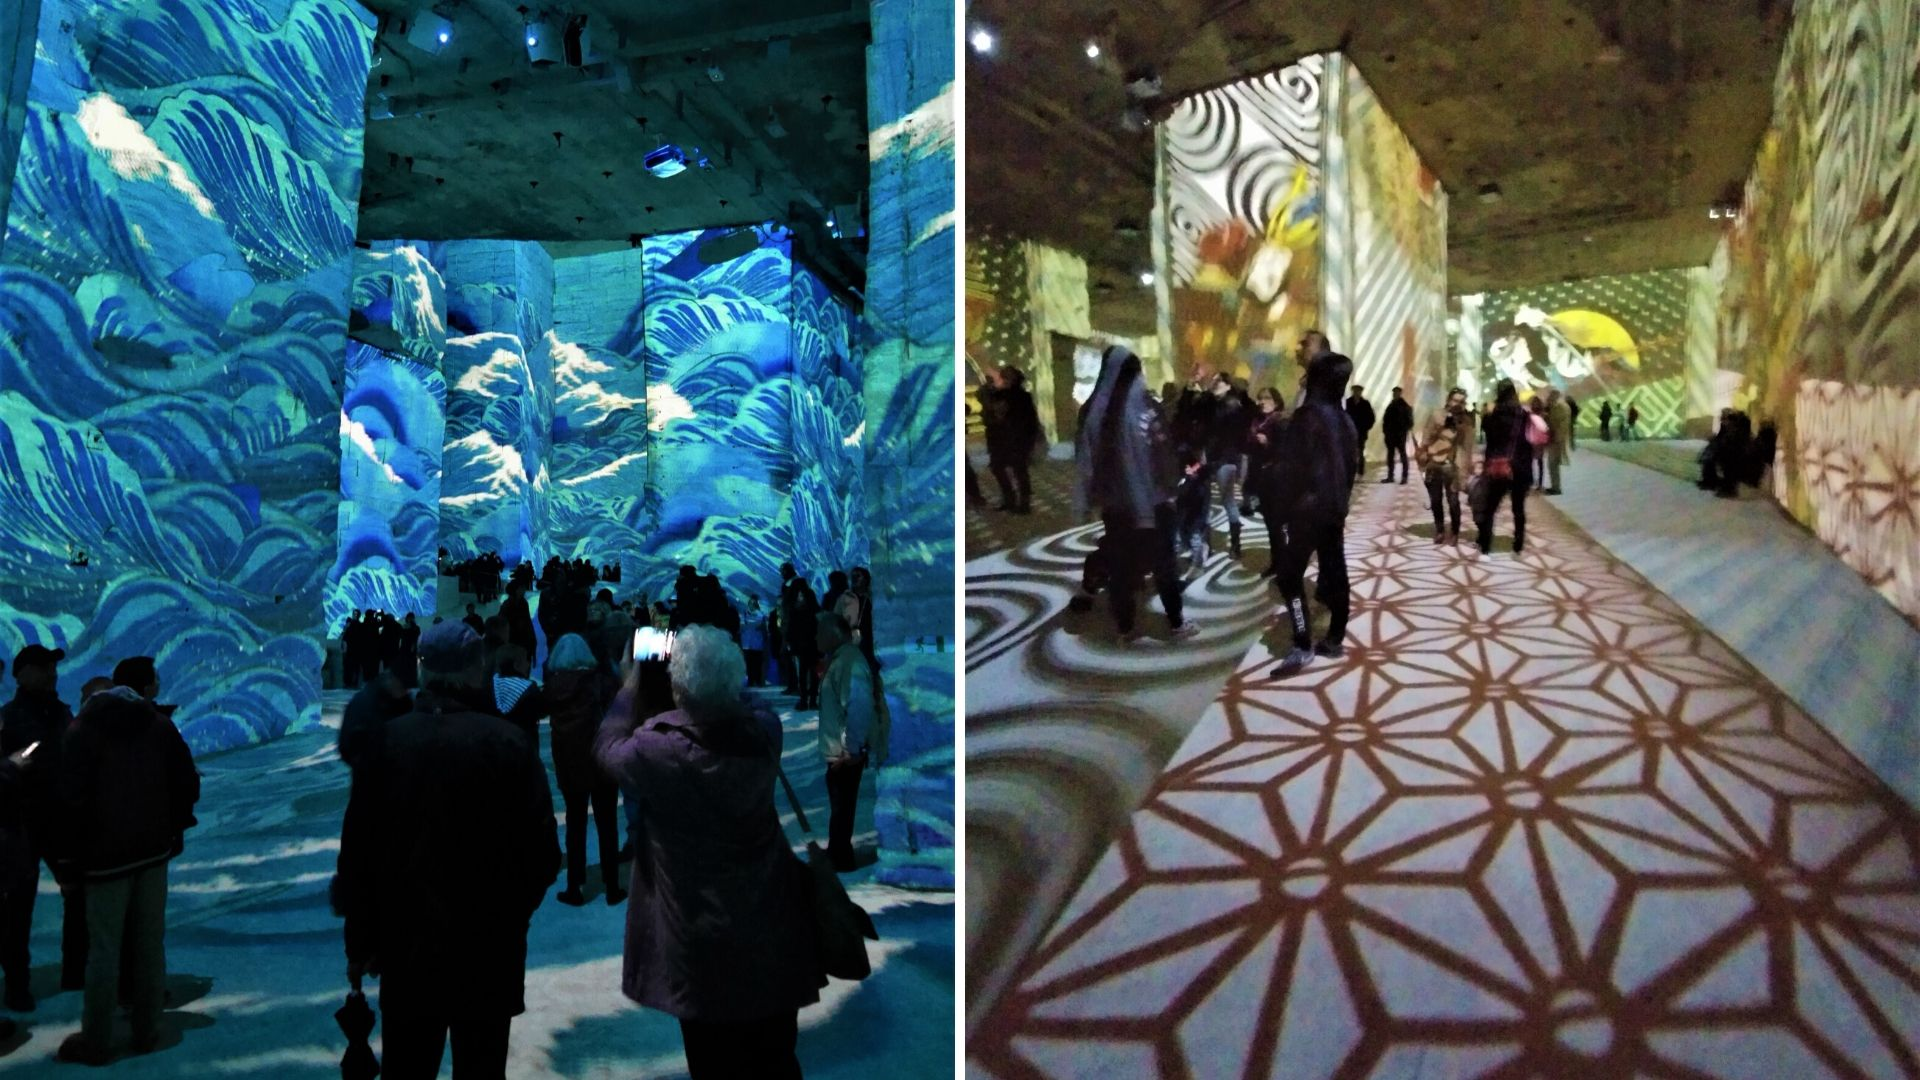 carrieres lumieres japon blog voyage france provence arpenter le chemin